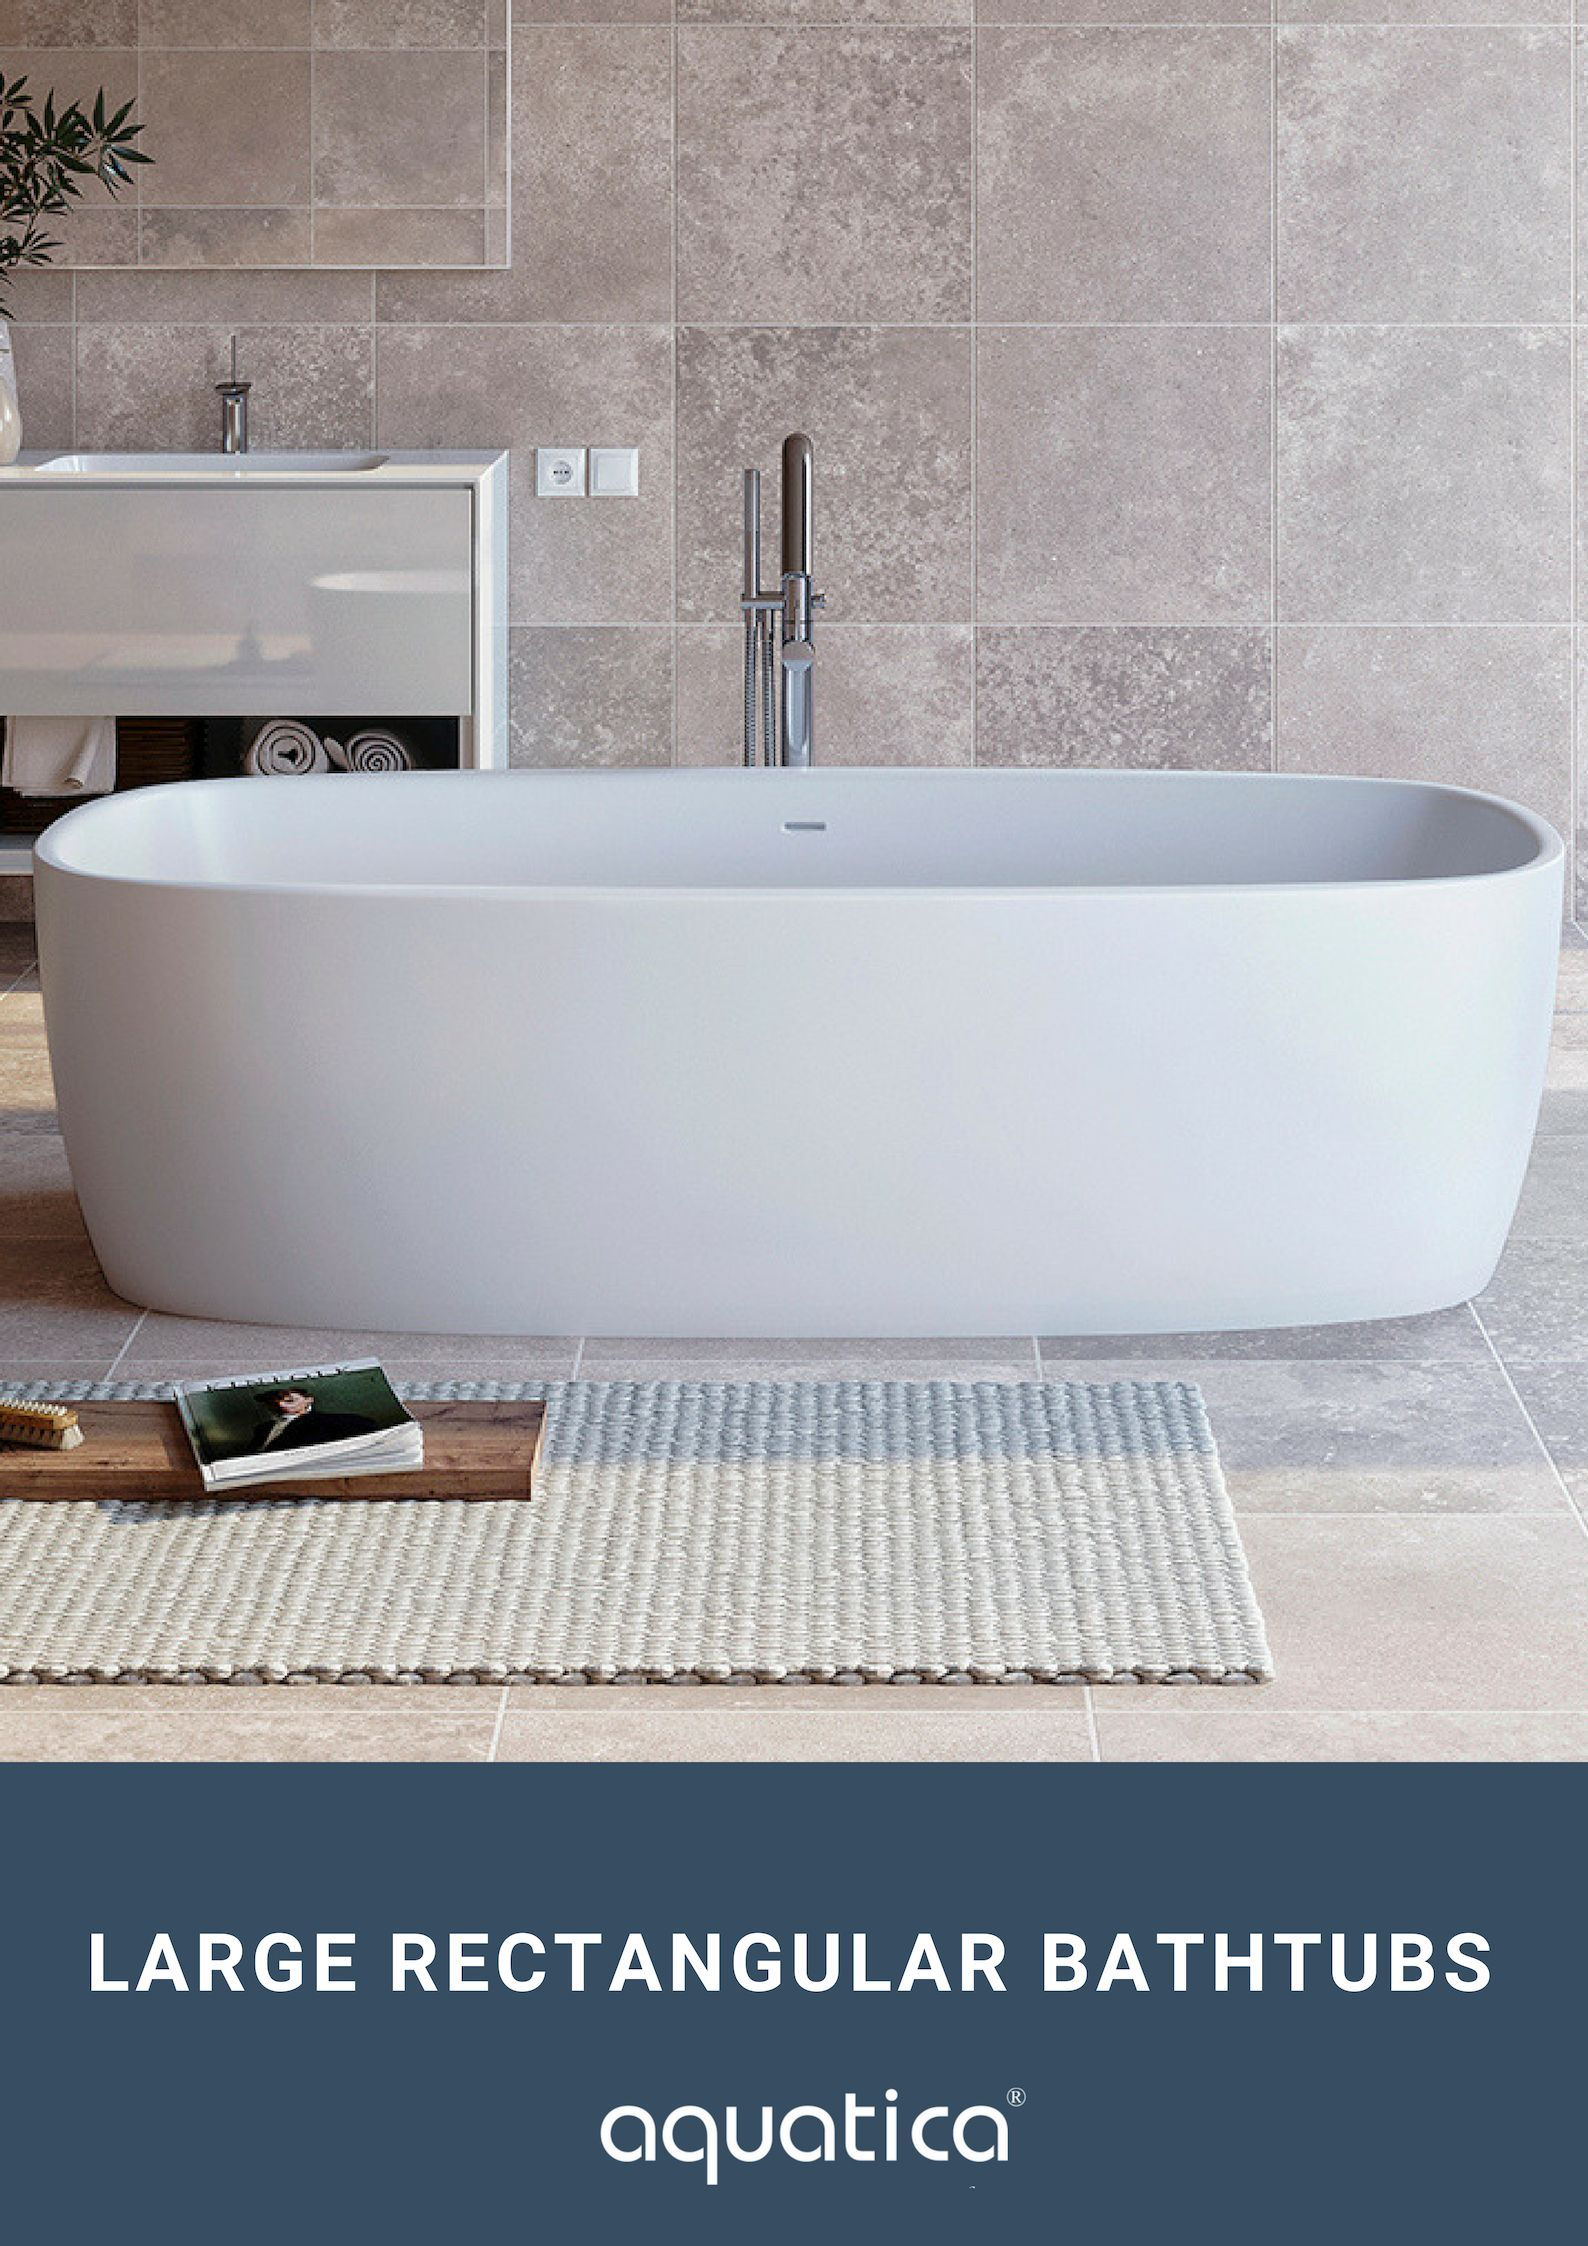 ᐈluxury Bathtubs For Two Buy Online Best Prices Aquatica